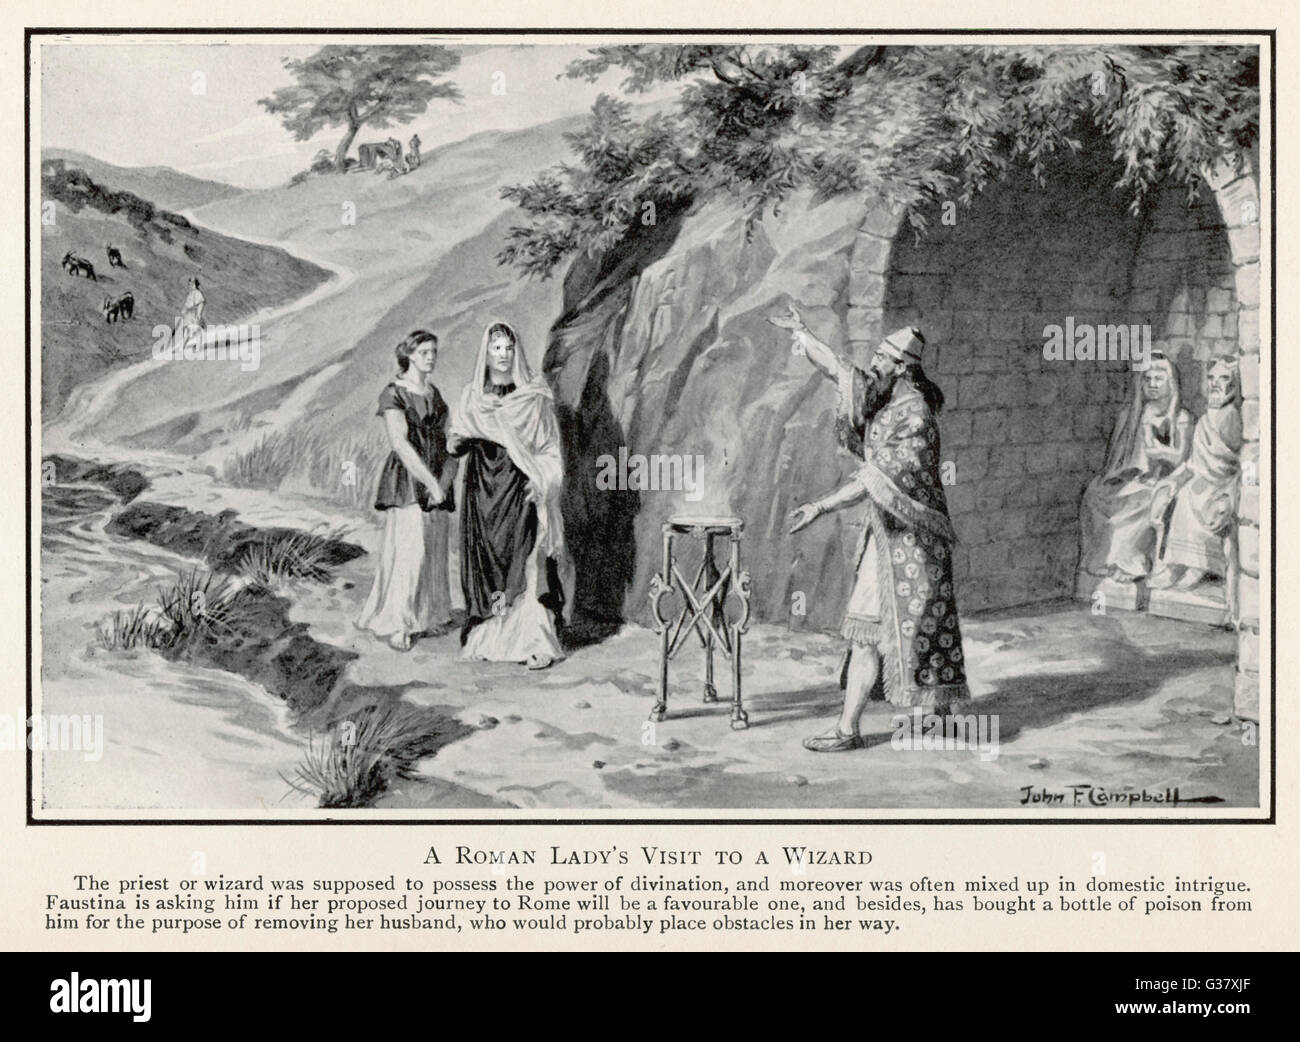 A Roman lady in Britain consults a native magician.        Date: 1st or 2nd century - Stock Image